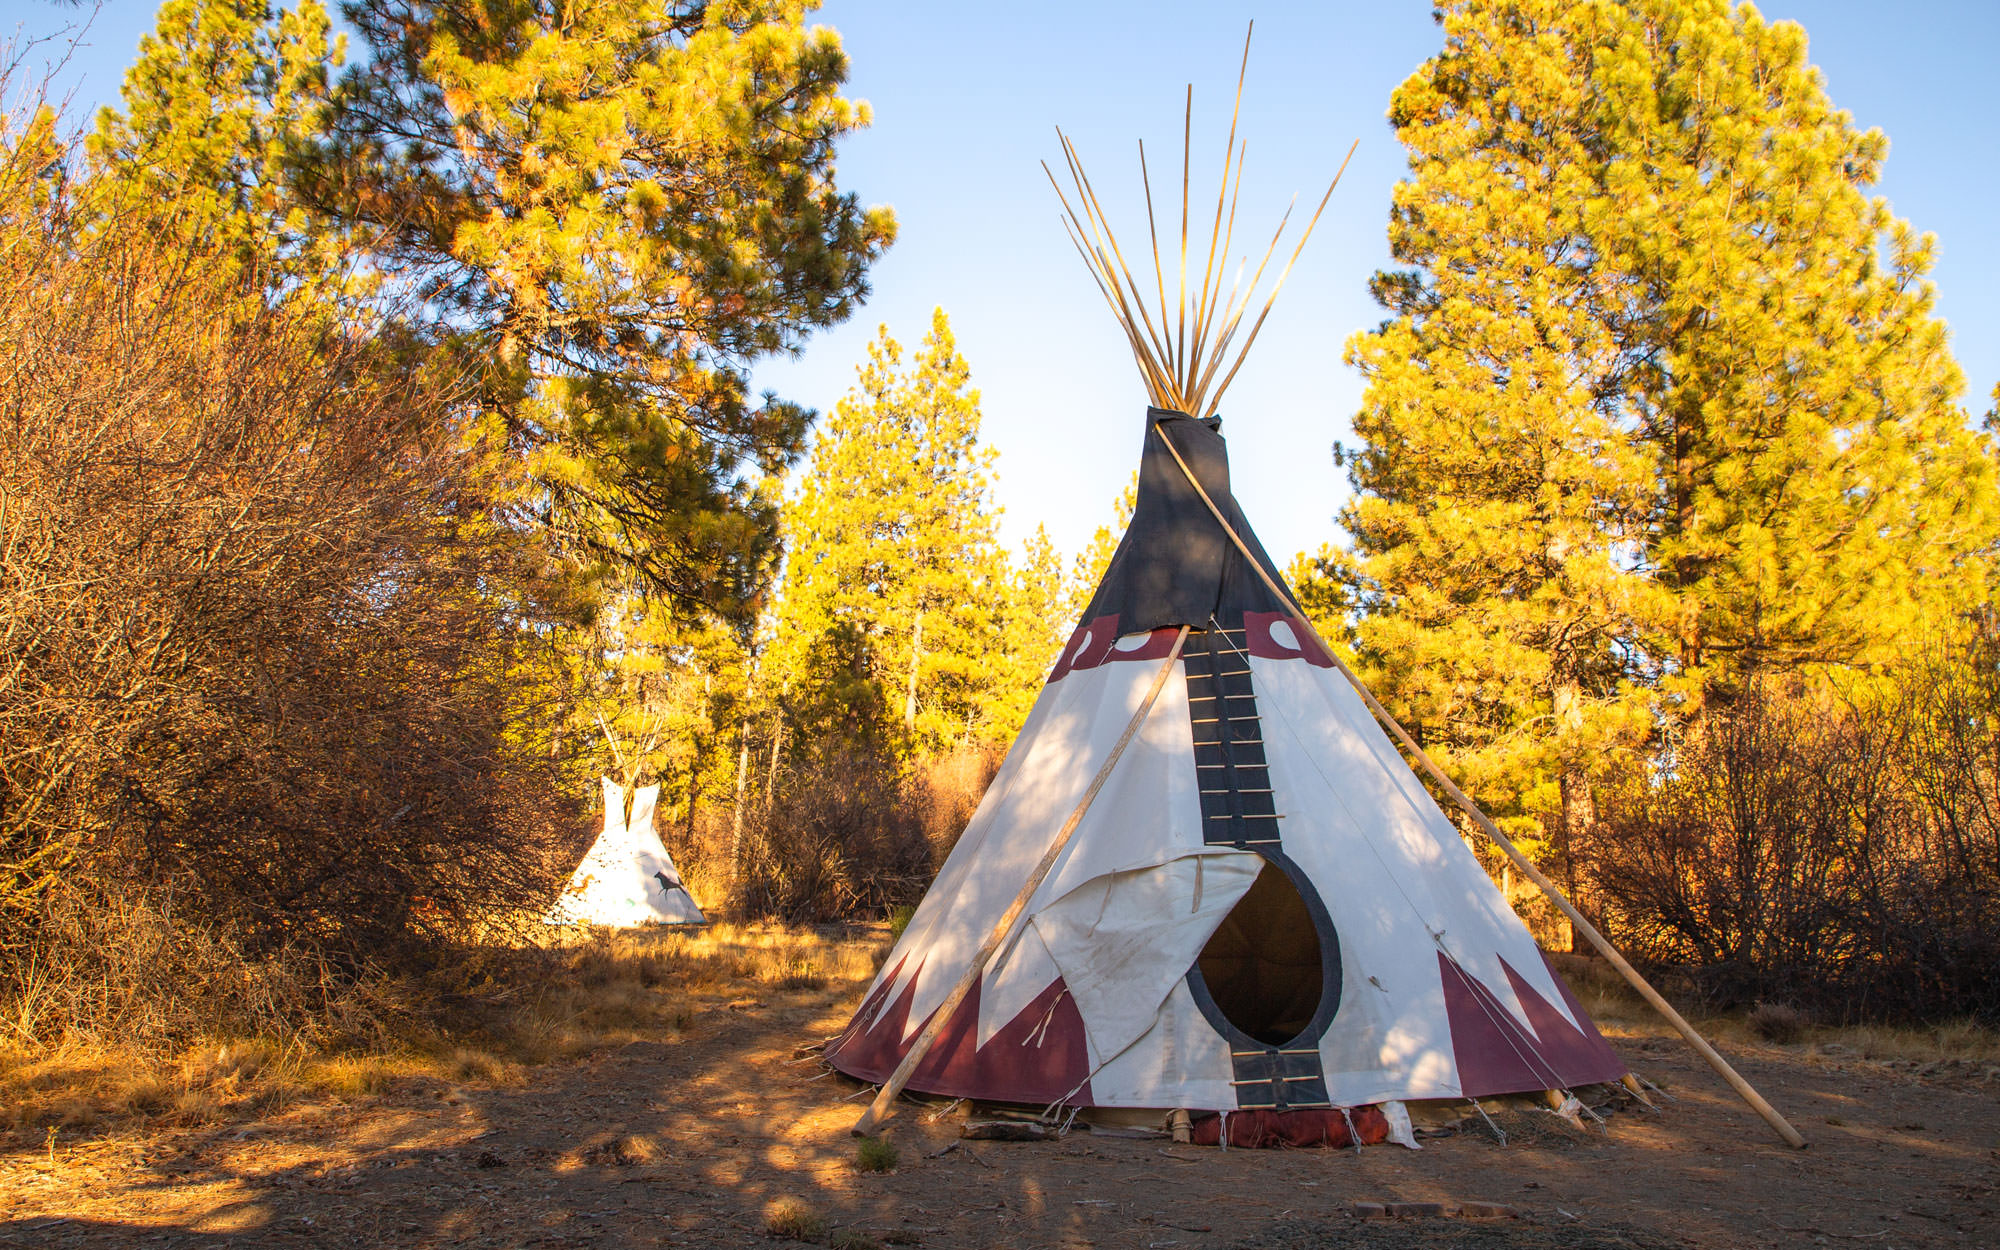 A teepee sits in the foreground surrounded by yellow trees.